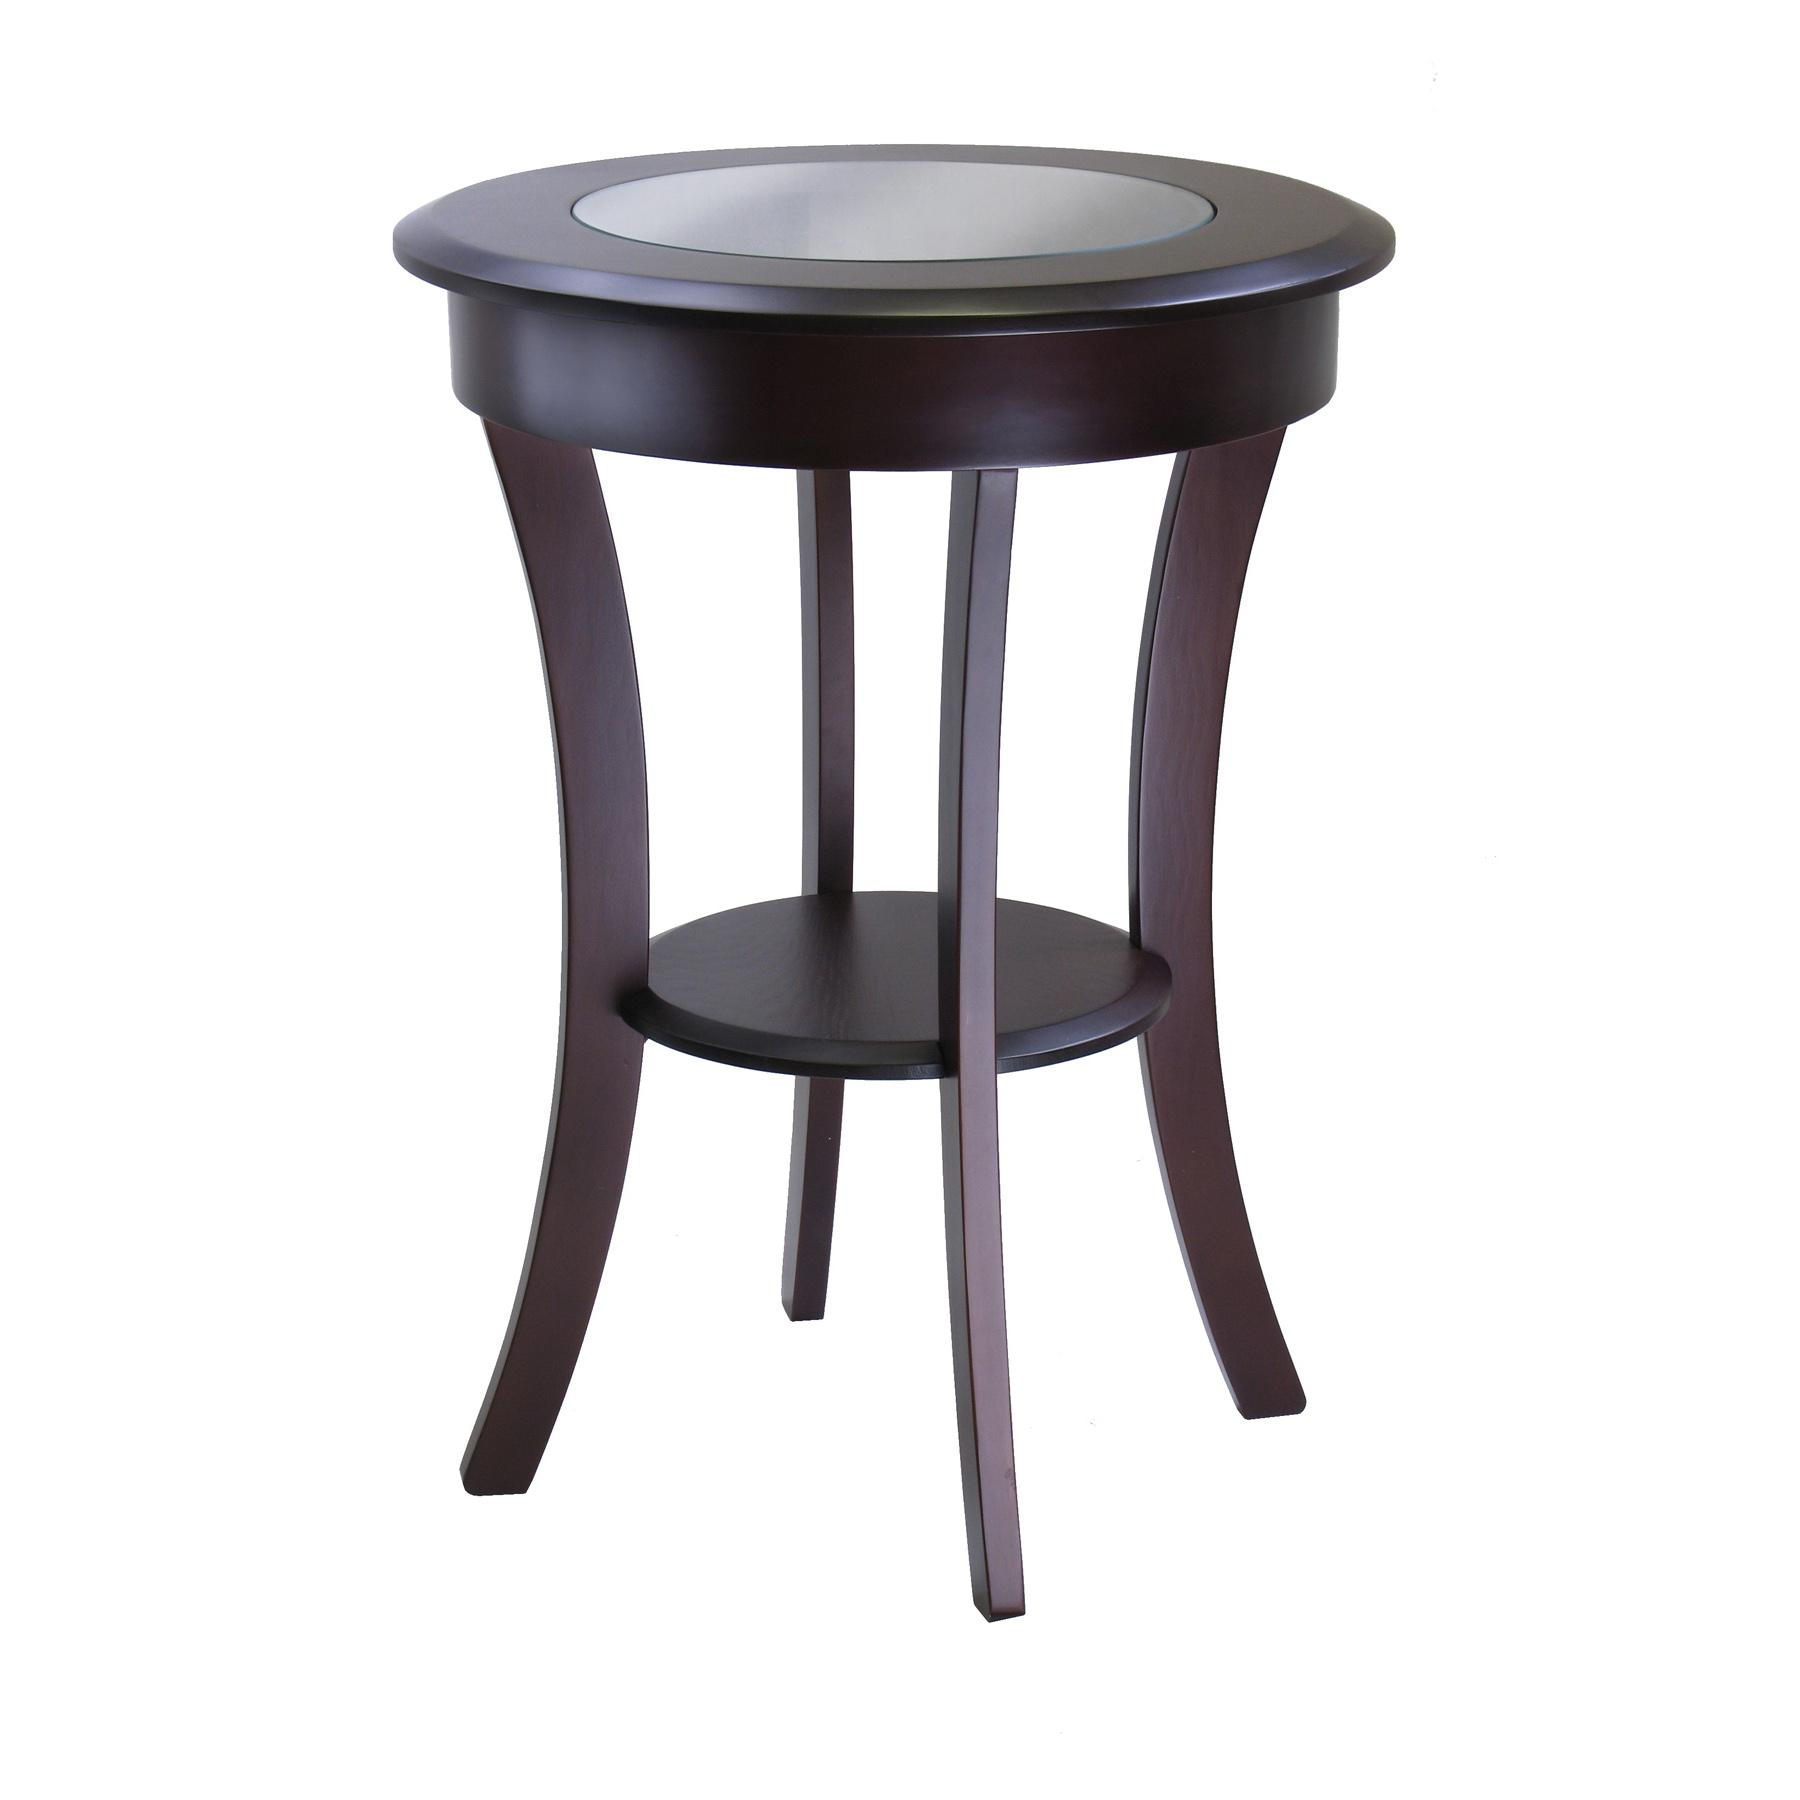 round black kitchen table decor rustic accent cottage winsome wood cassie with glass white and silver end tables battery powered lamps small corner living room gold knobs outdoor